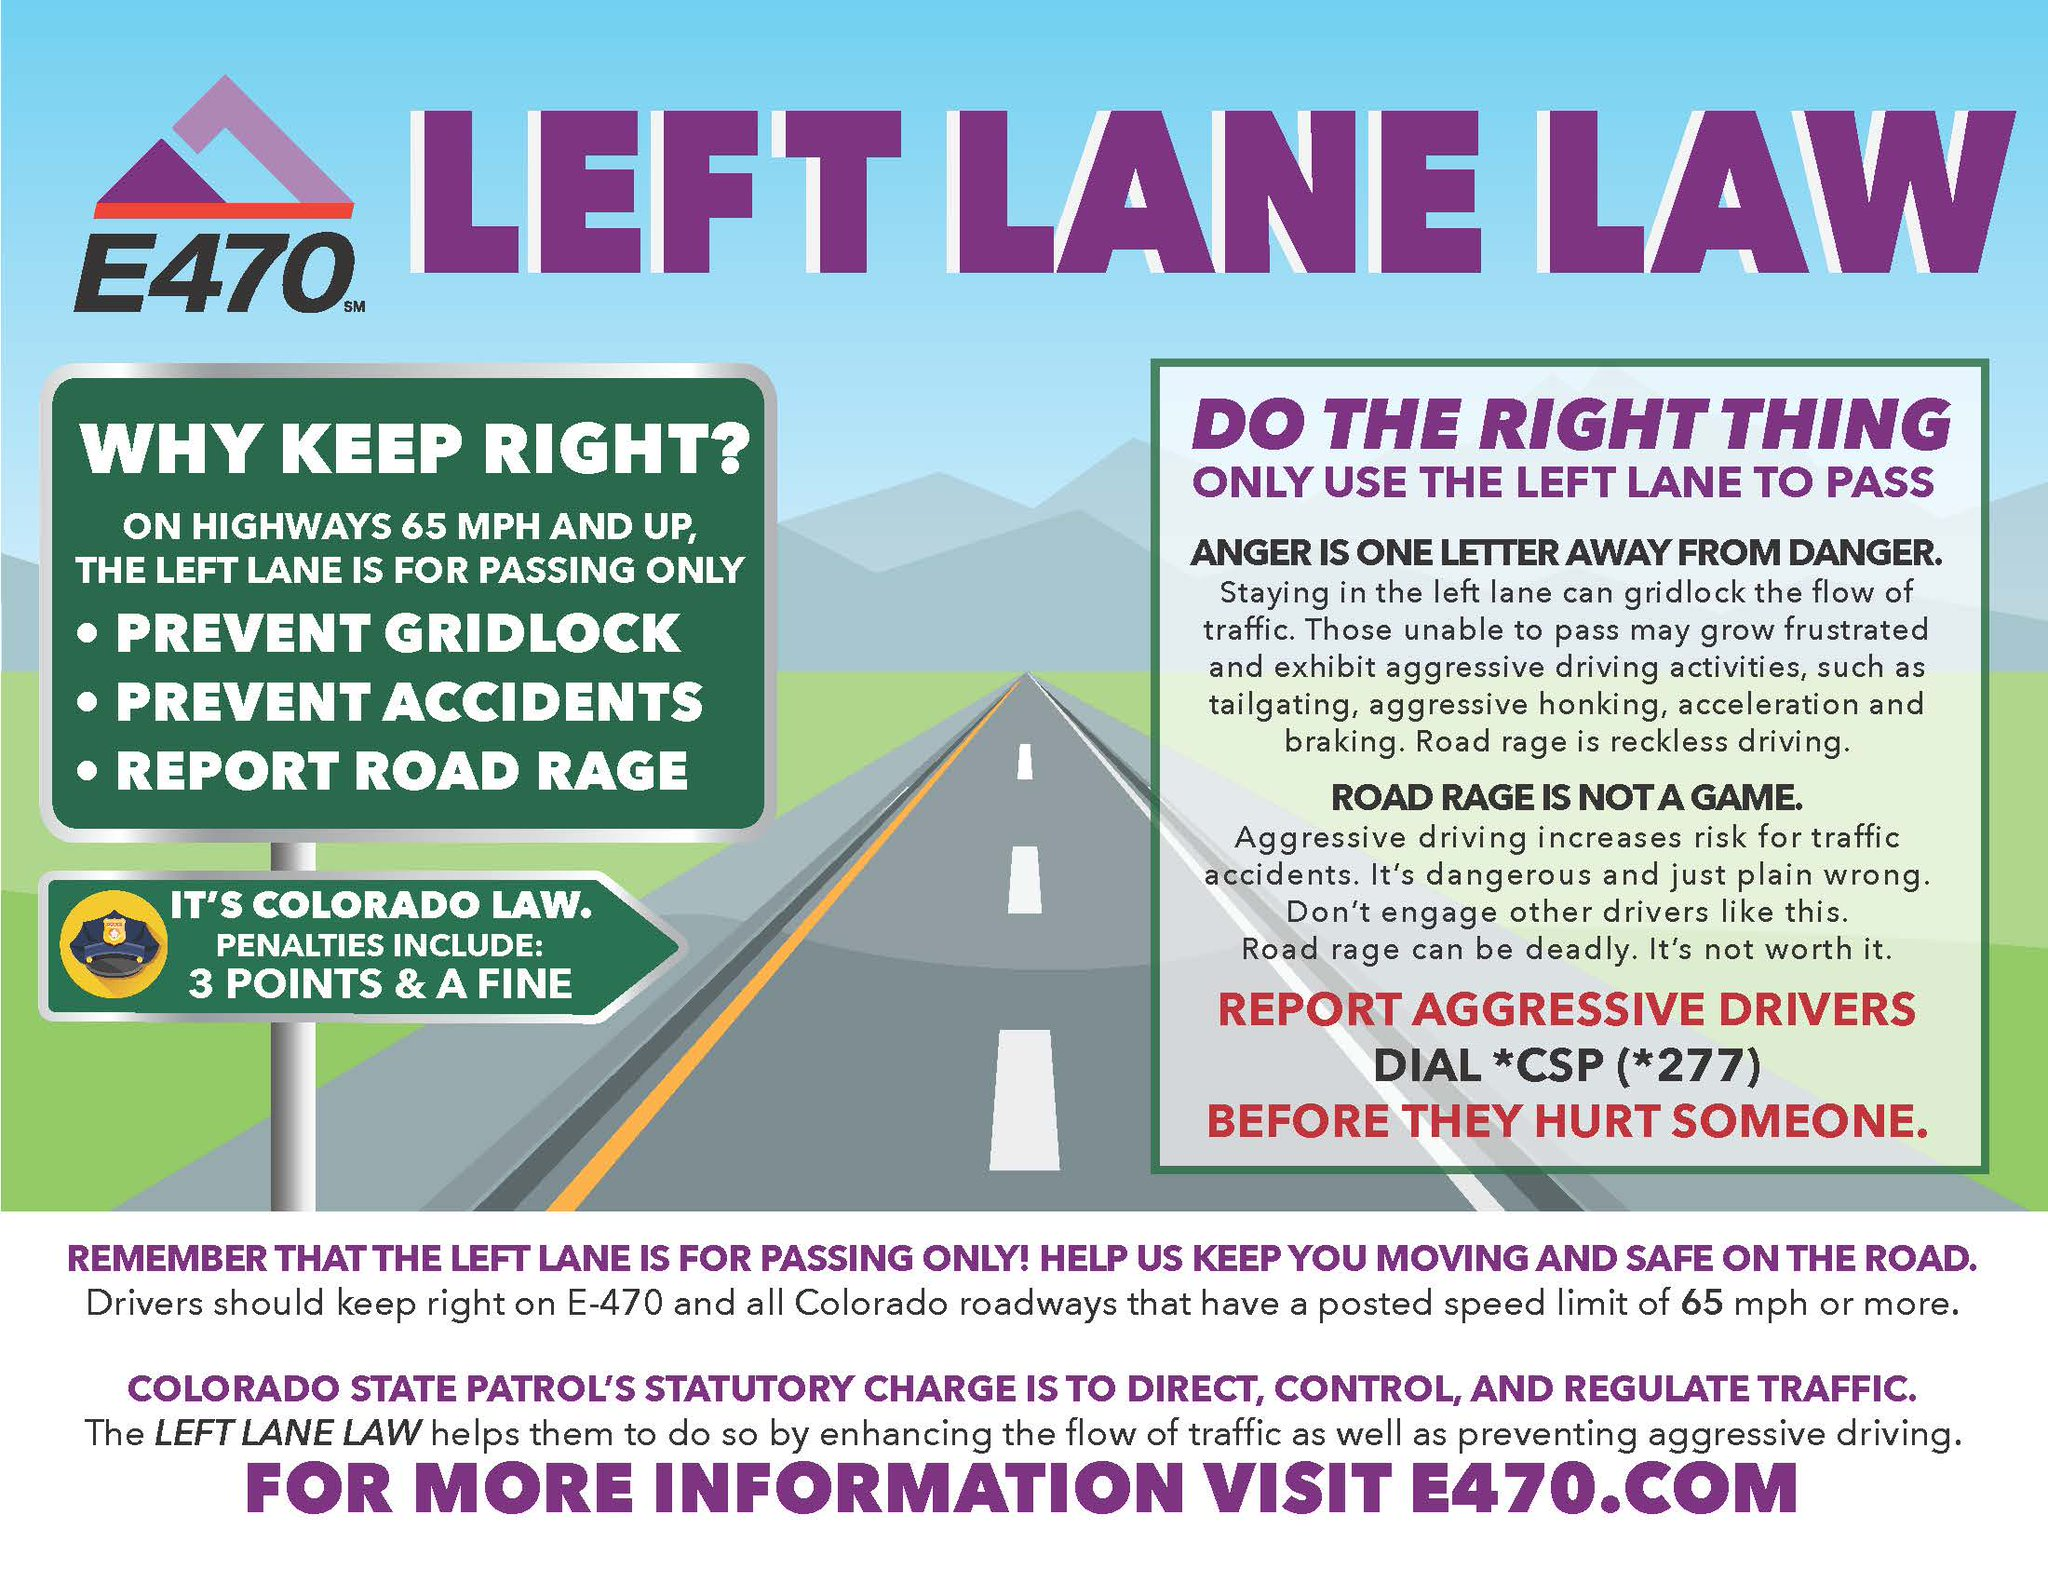 On Highways With A Sd Limit Of 65 Mph Or Higher The Left Lane Is For Pingonly Help To Prevent Gridlock And Road Rage